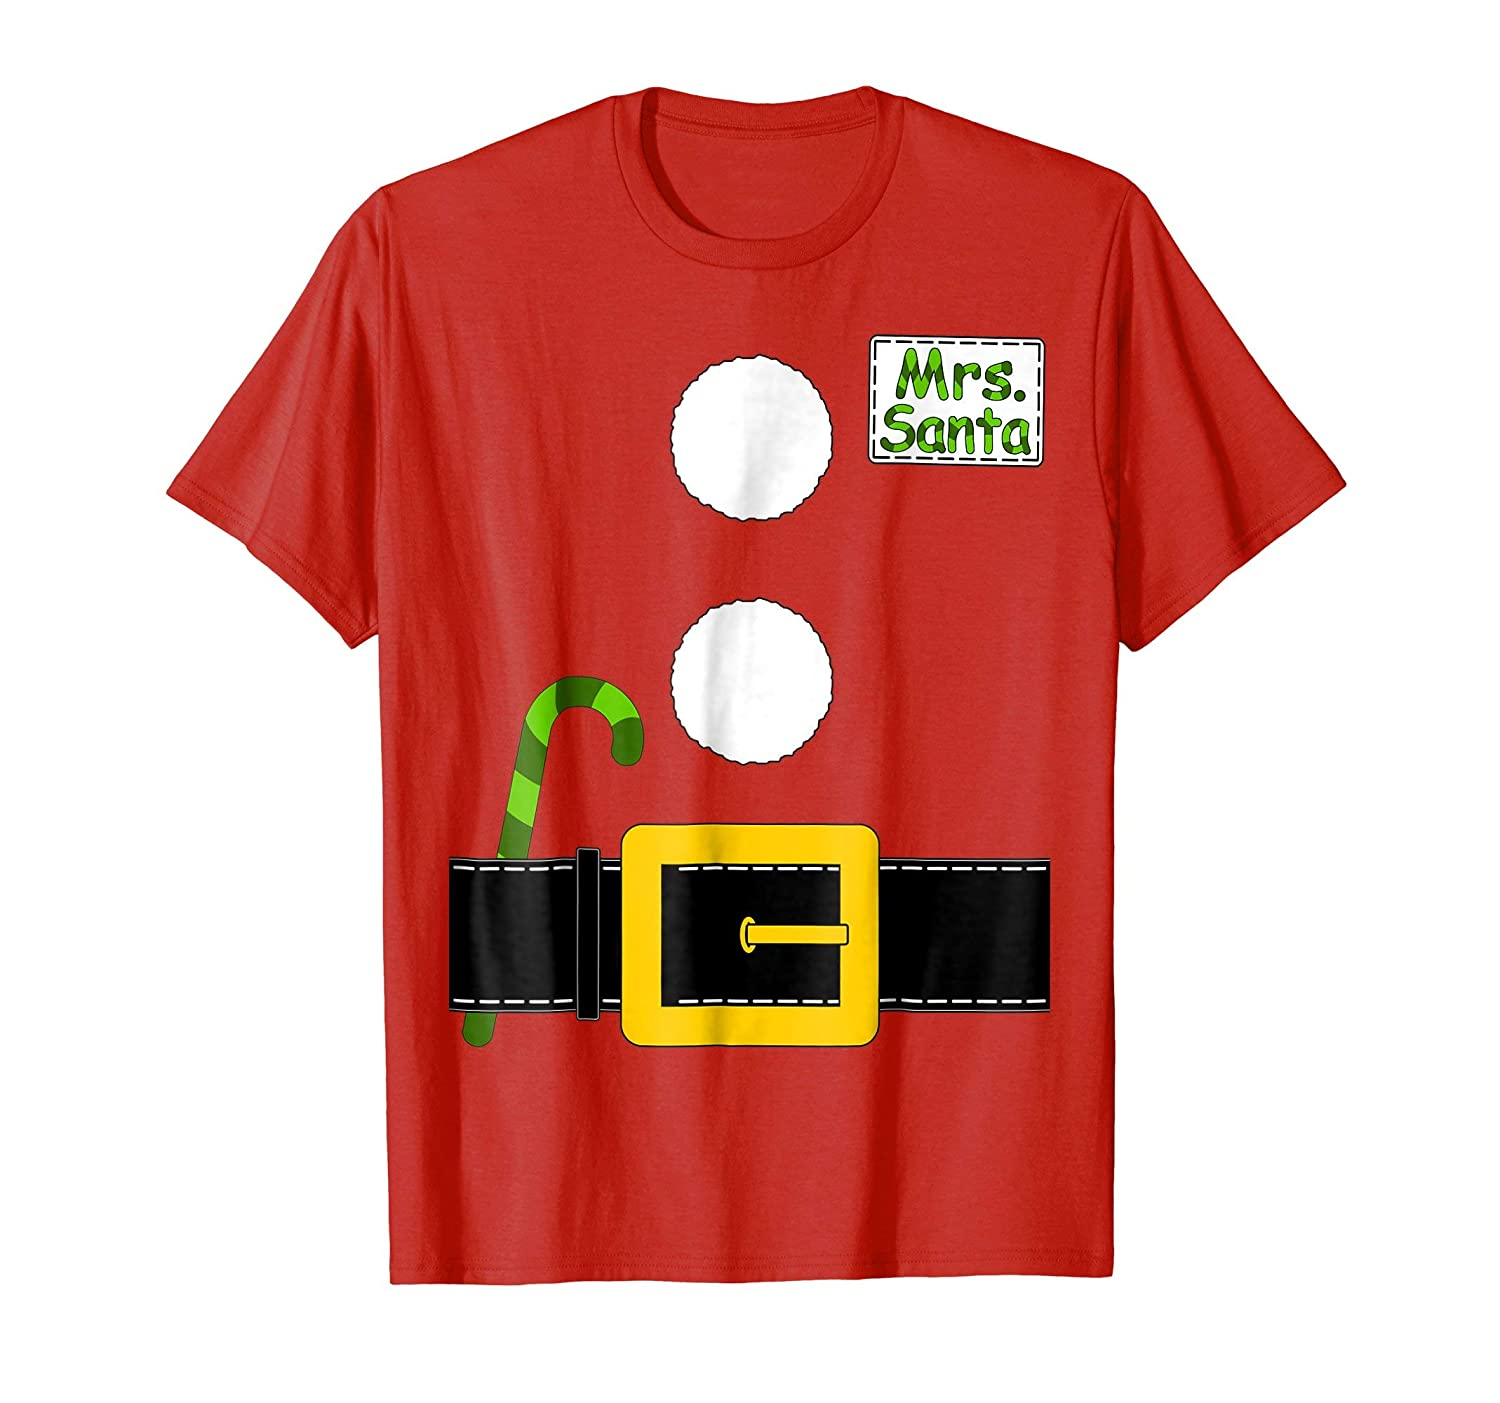 Mrs Santa Claus T-shirt Matching Christmas Costume Couple Mr. And Mrs. Santa Claus Costumes Set .